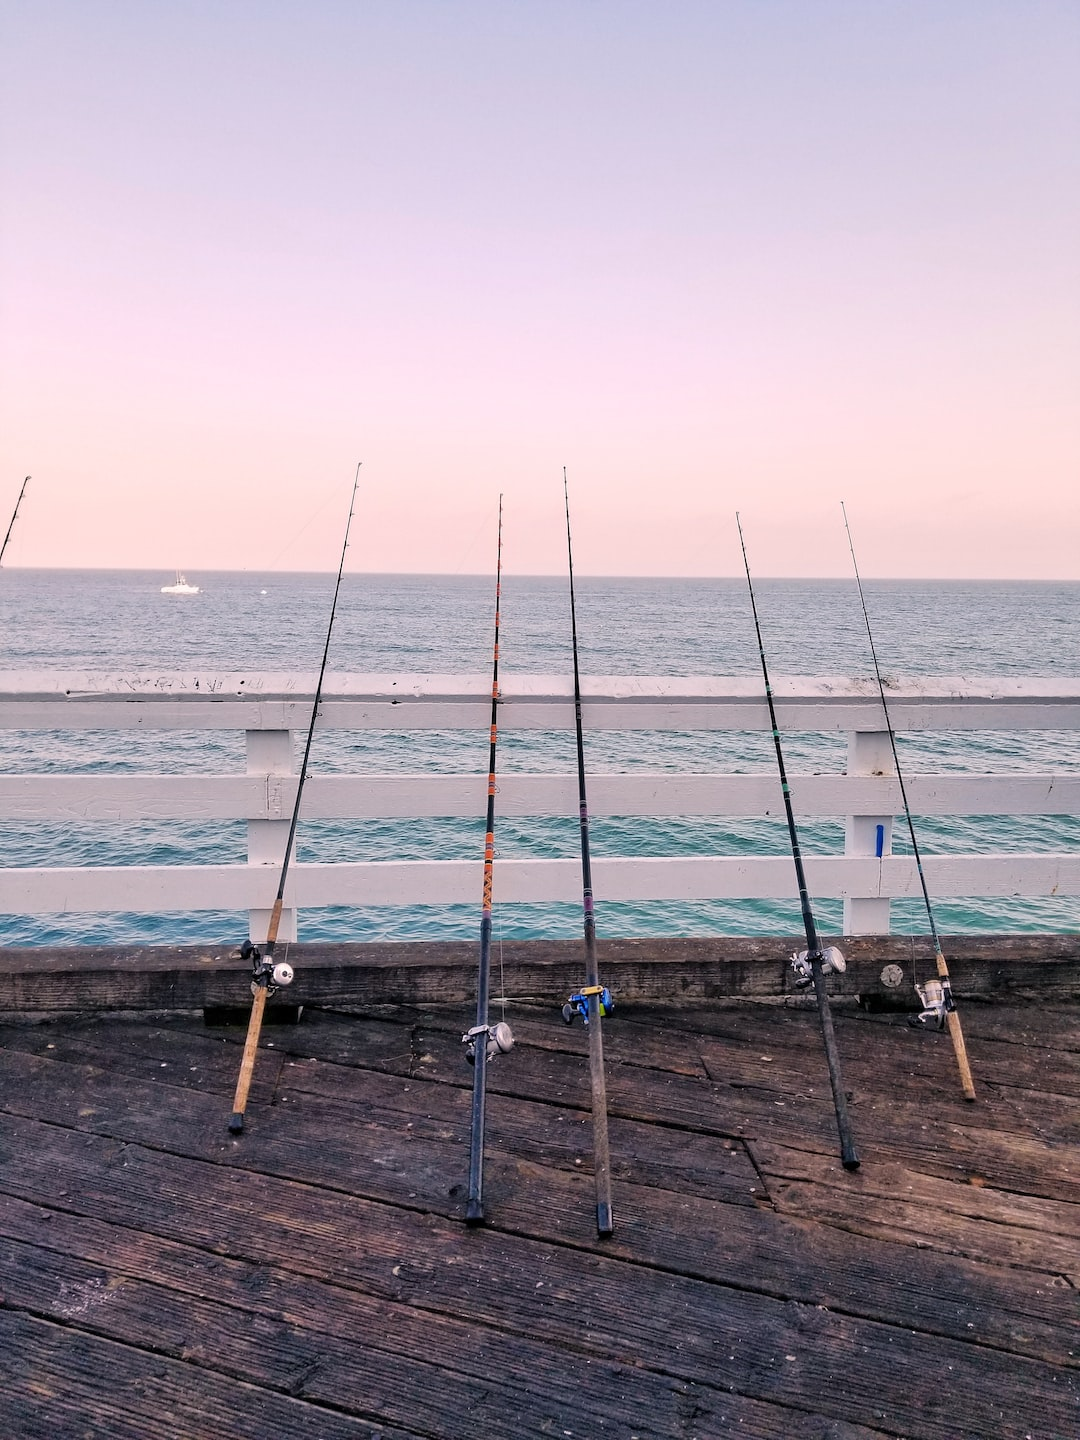 Fishing rod pictures download free images on unsplash for Pictures of fishing poles